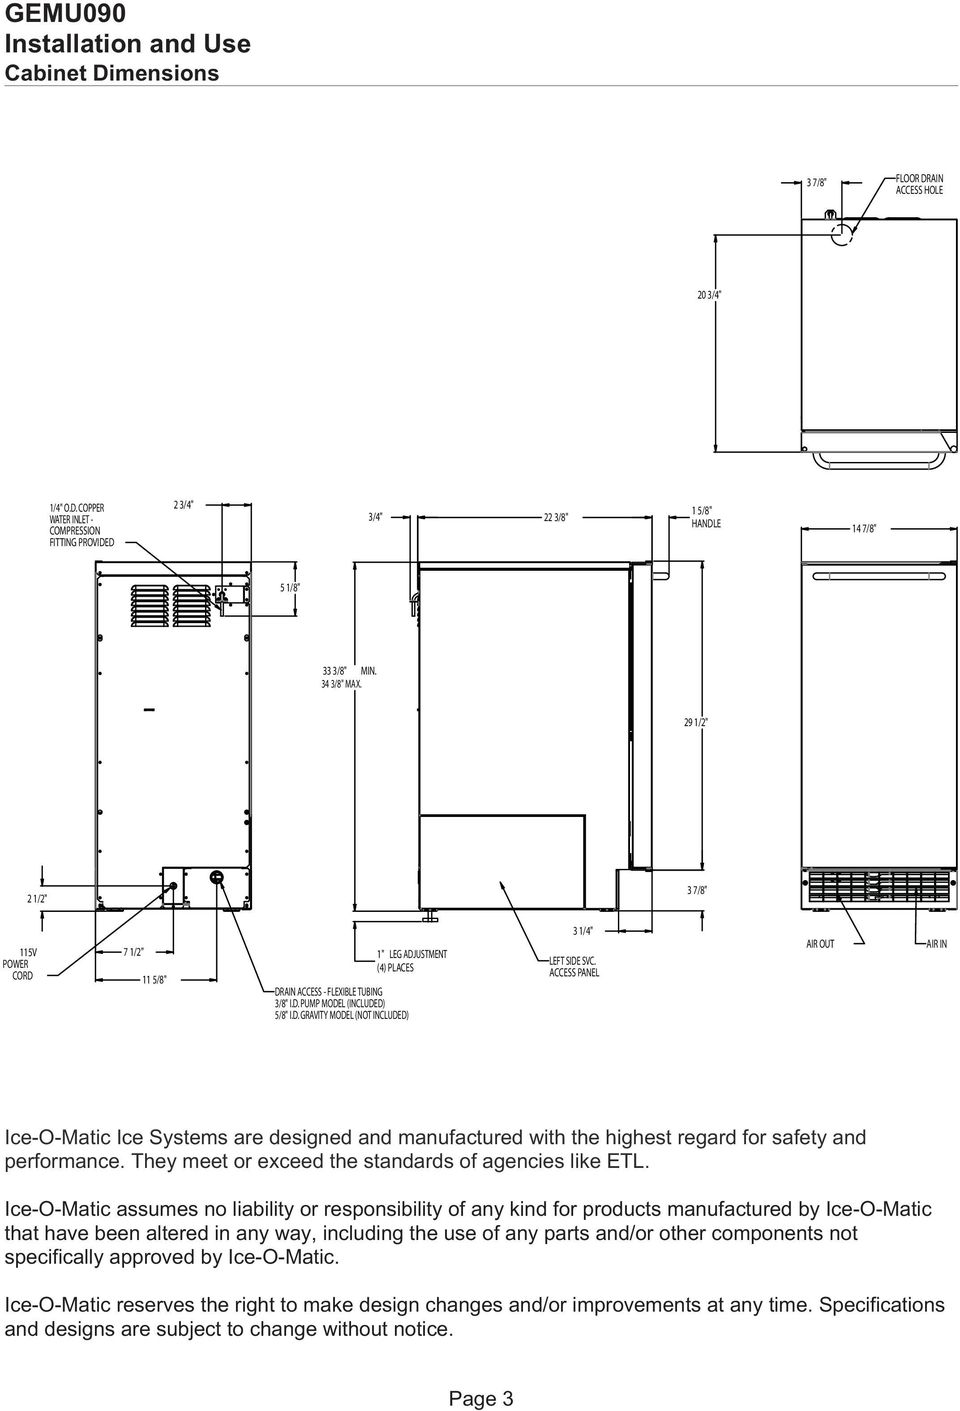 medium resolution of access panel air out air in ice o matic ice systems are designed and